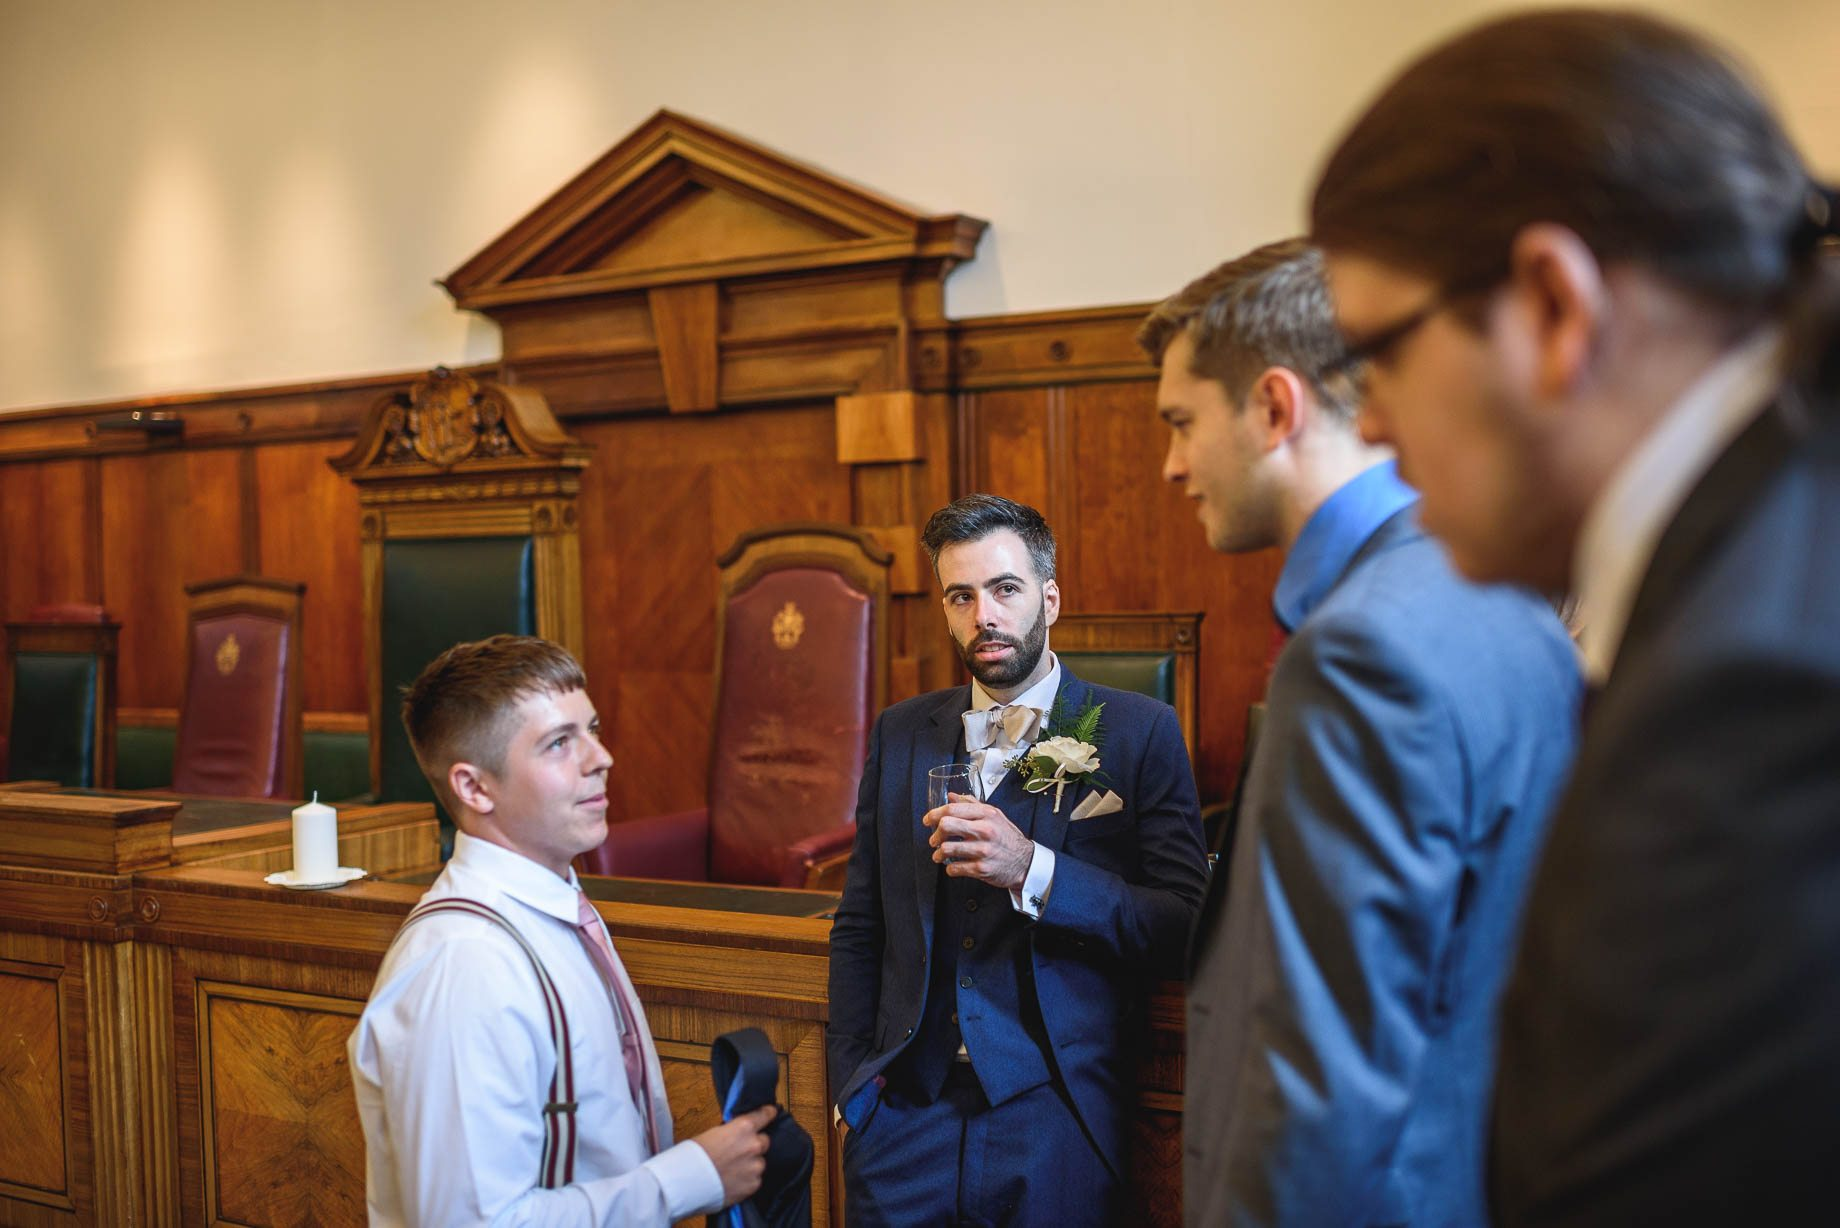 London Wedding Photography - Guy Collier Photography - LJ + Russell (37 of 155)